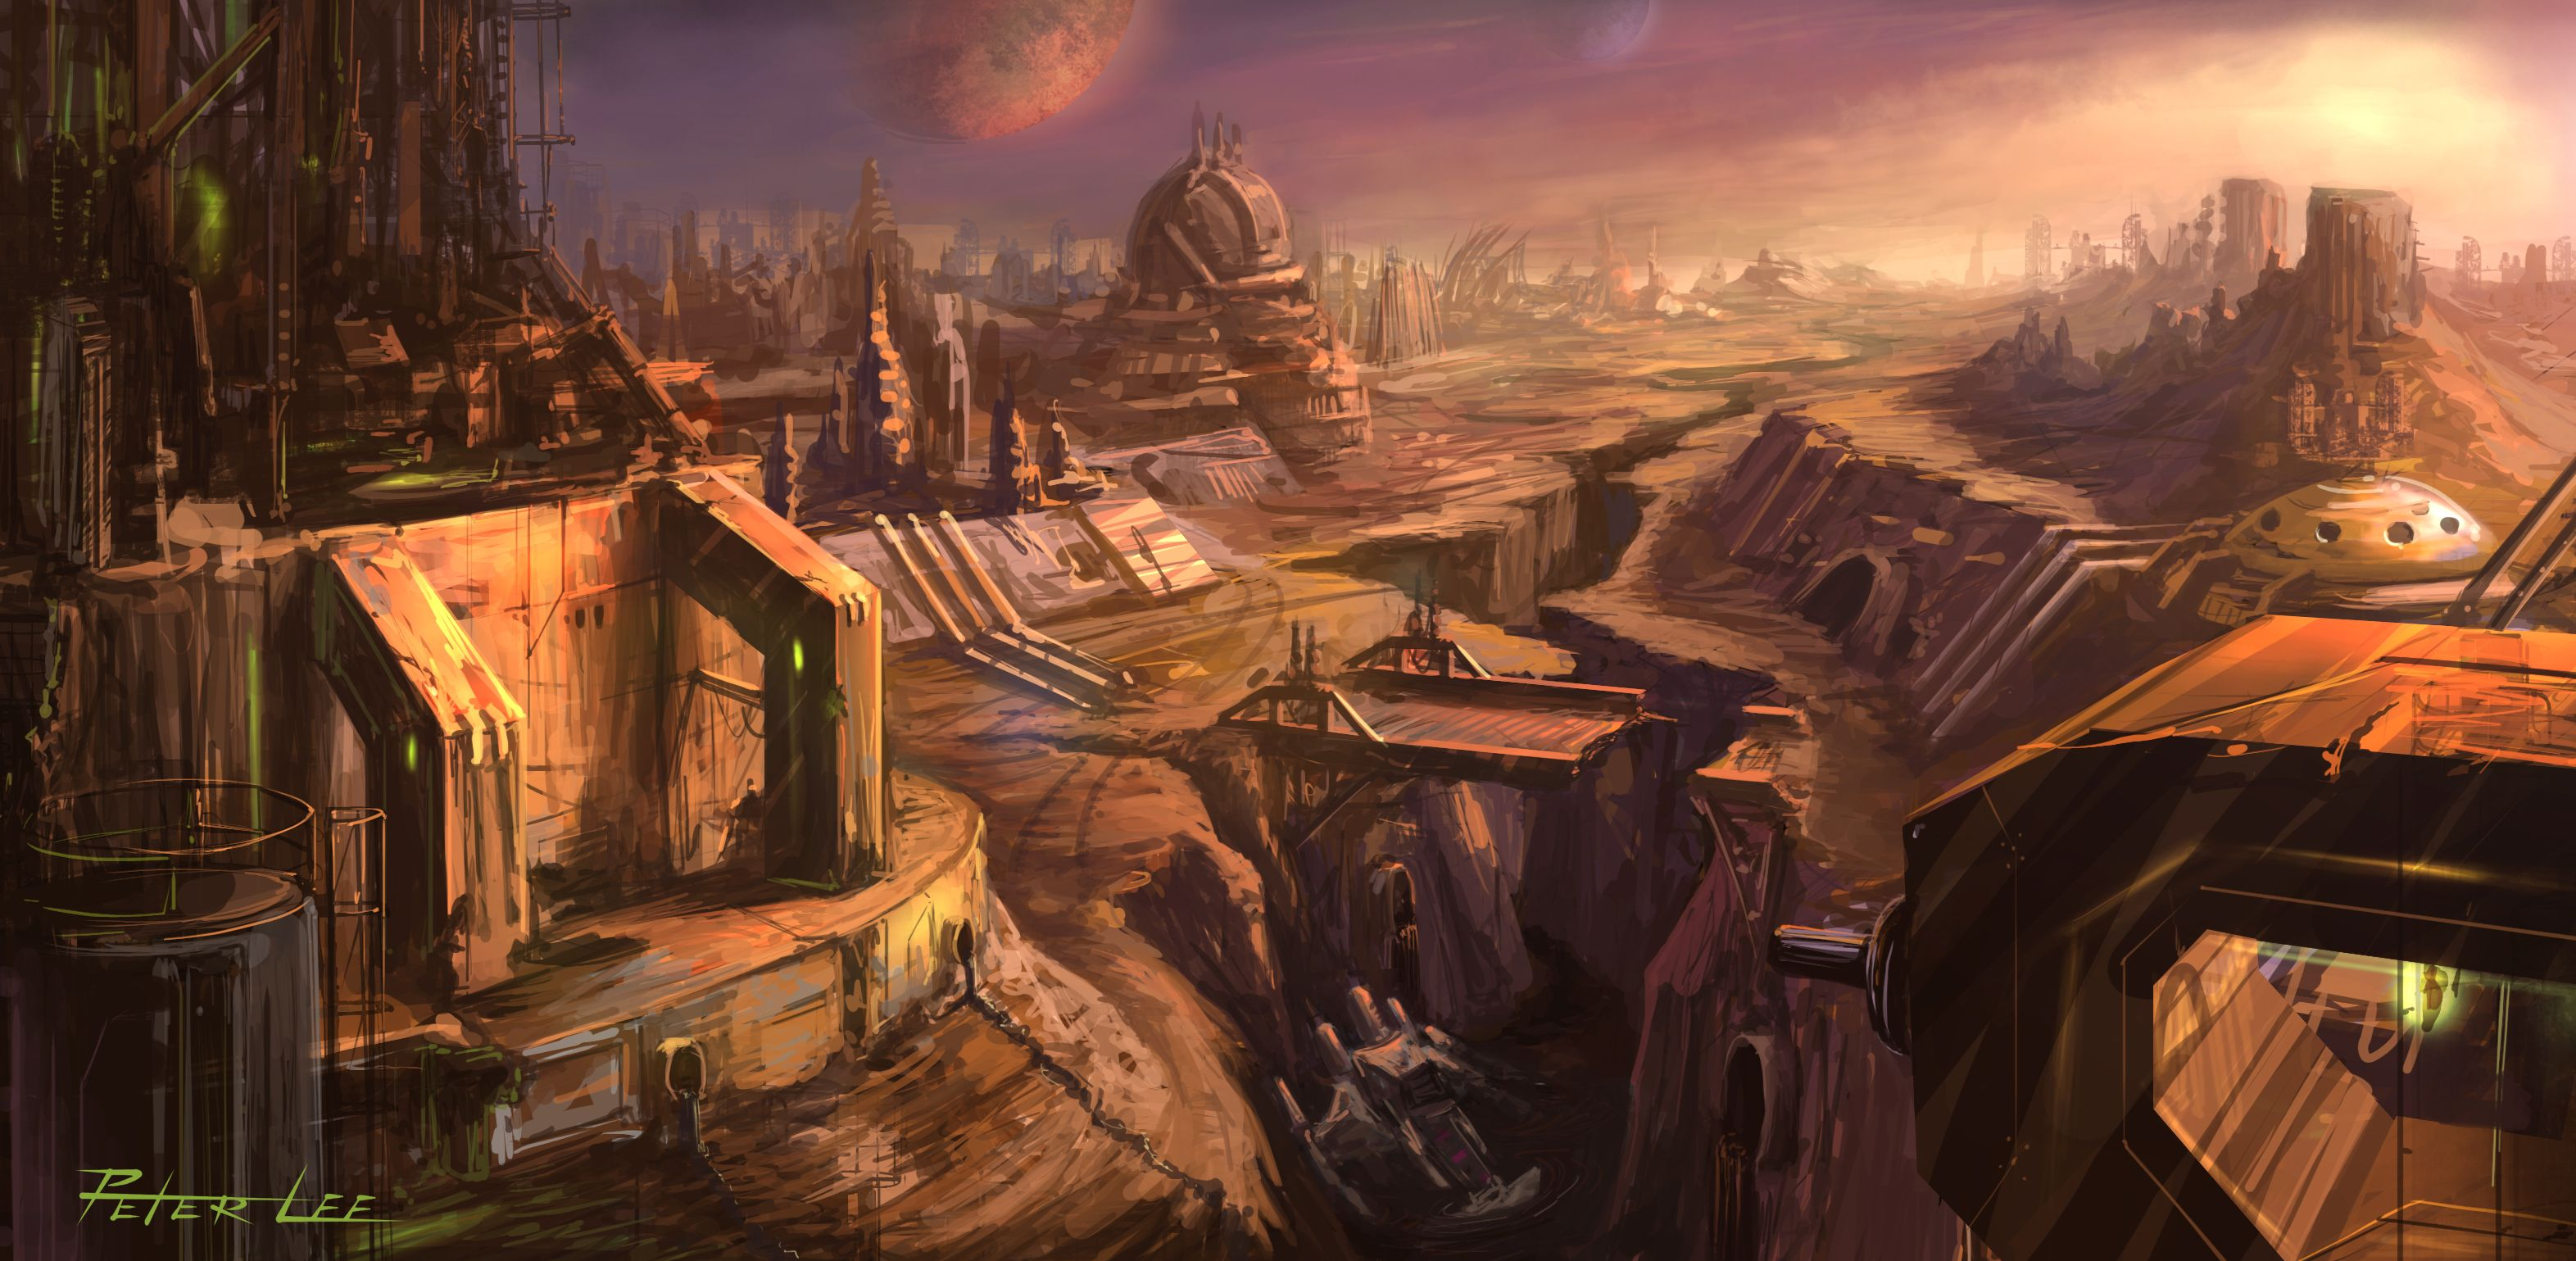 sci fi cities on other planets - photo #18